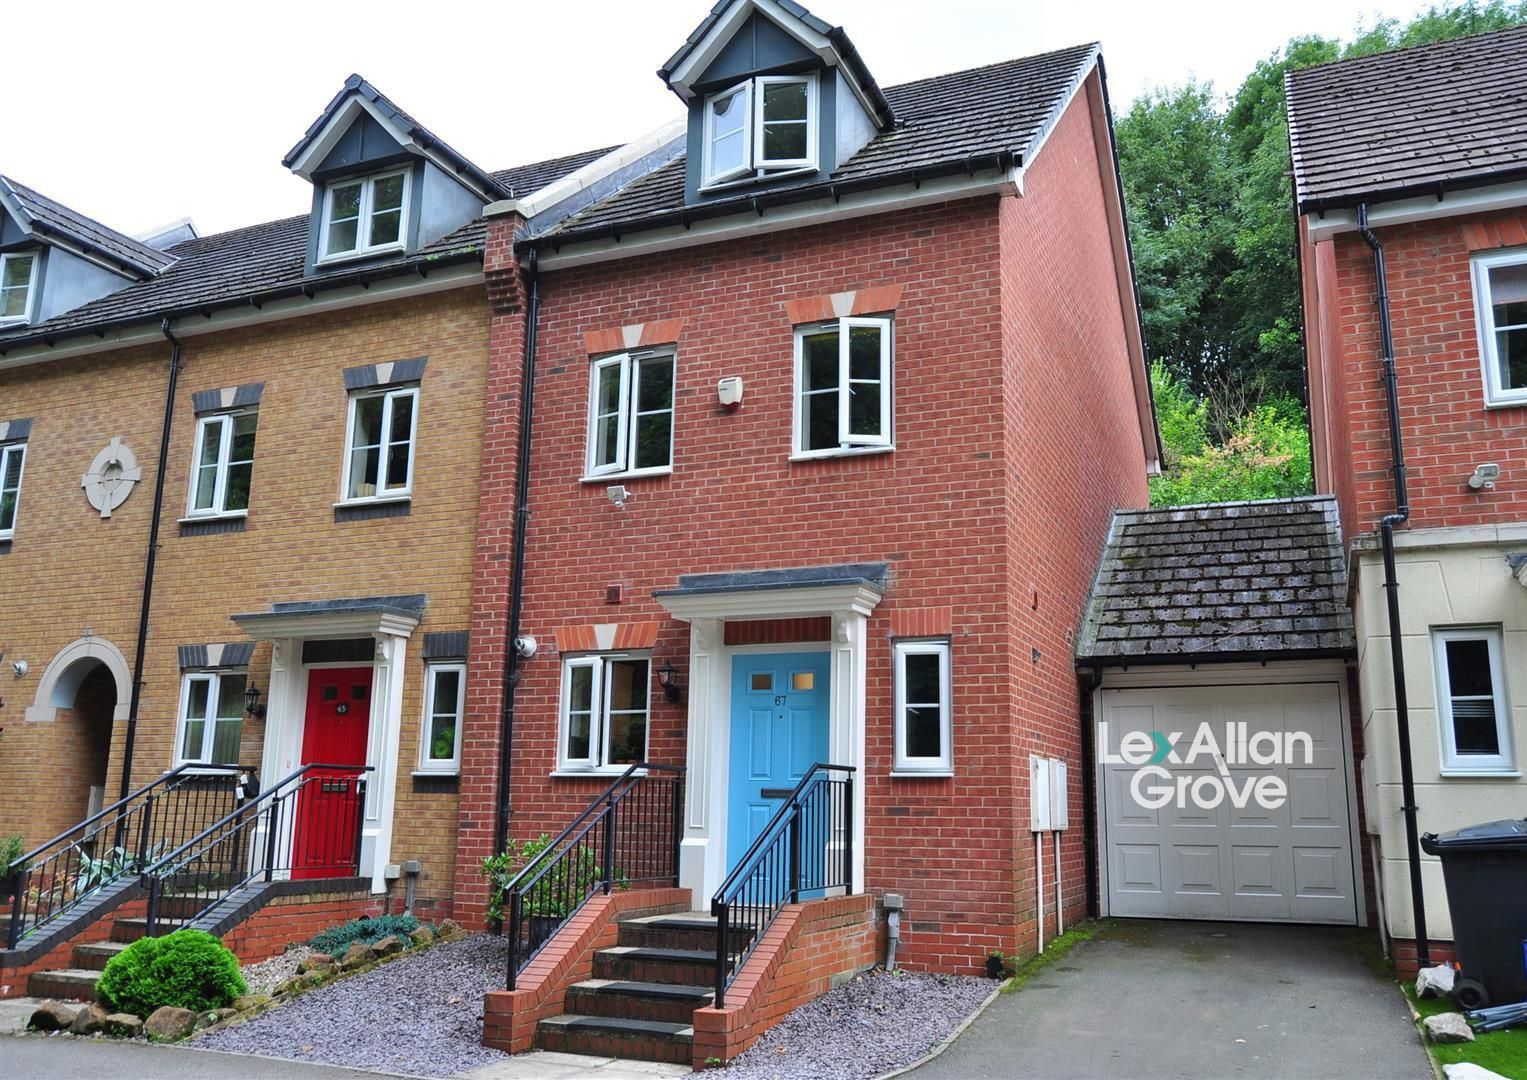 4 bed end-of-terrace for sale  - Property Image 1